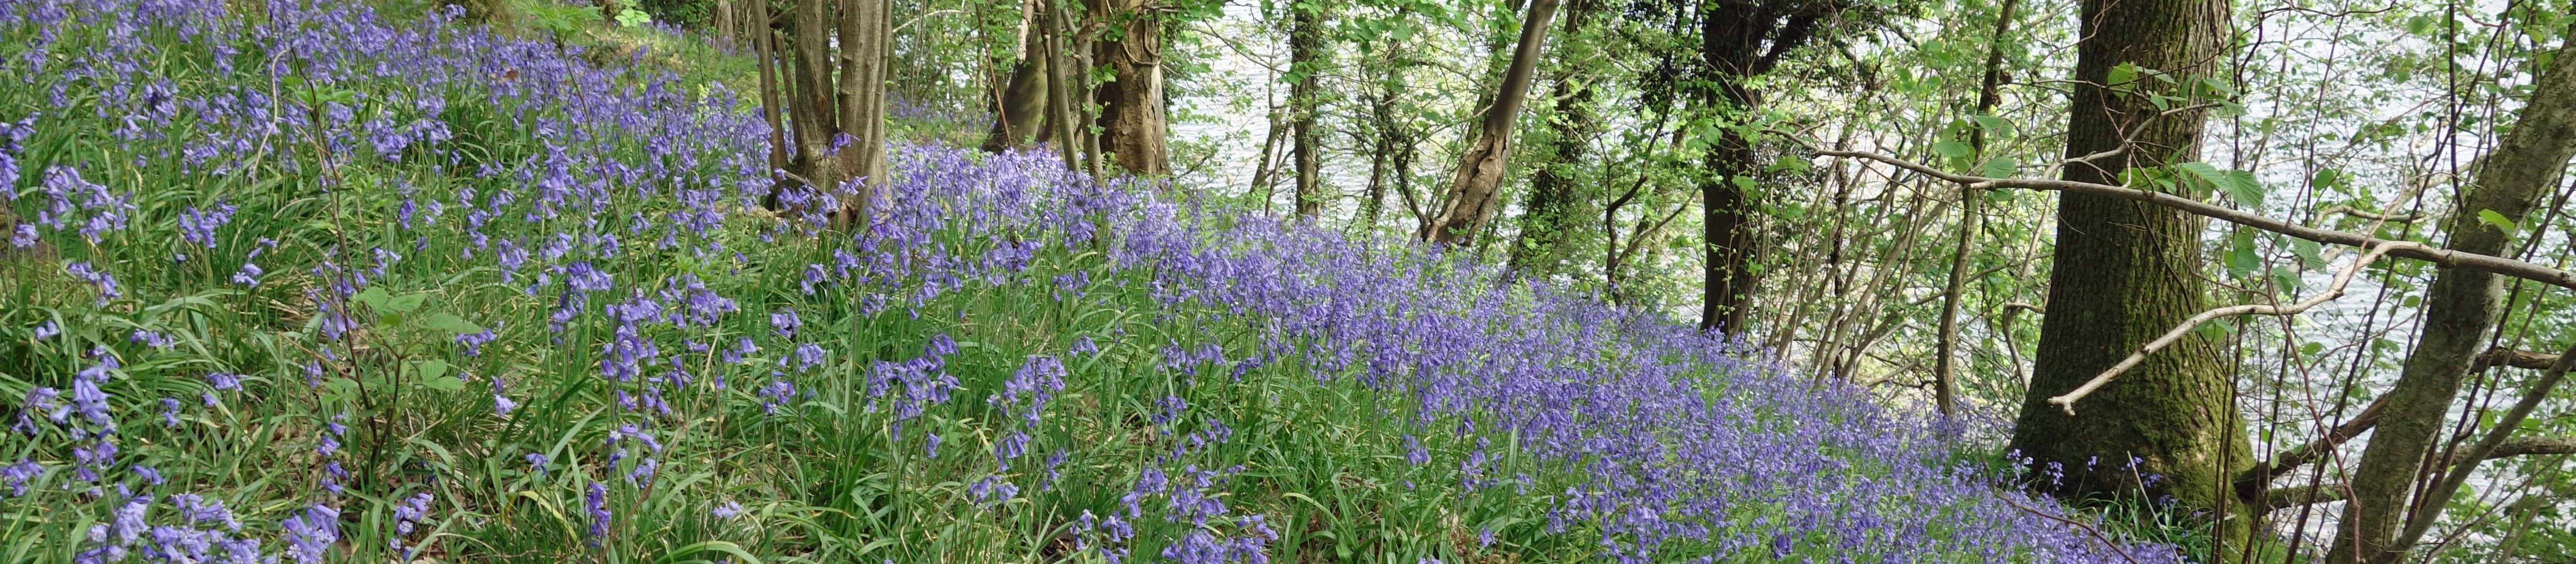 Lawson's Wood bluebells